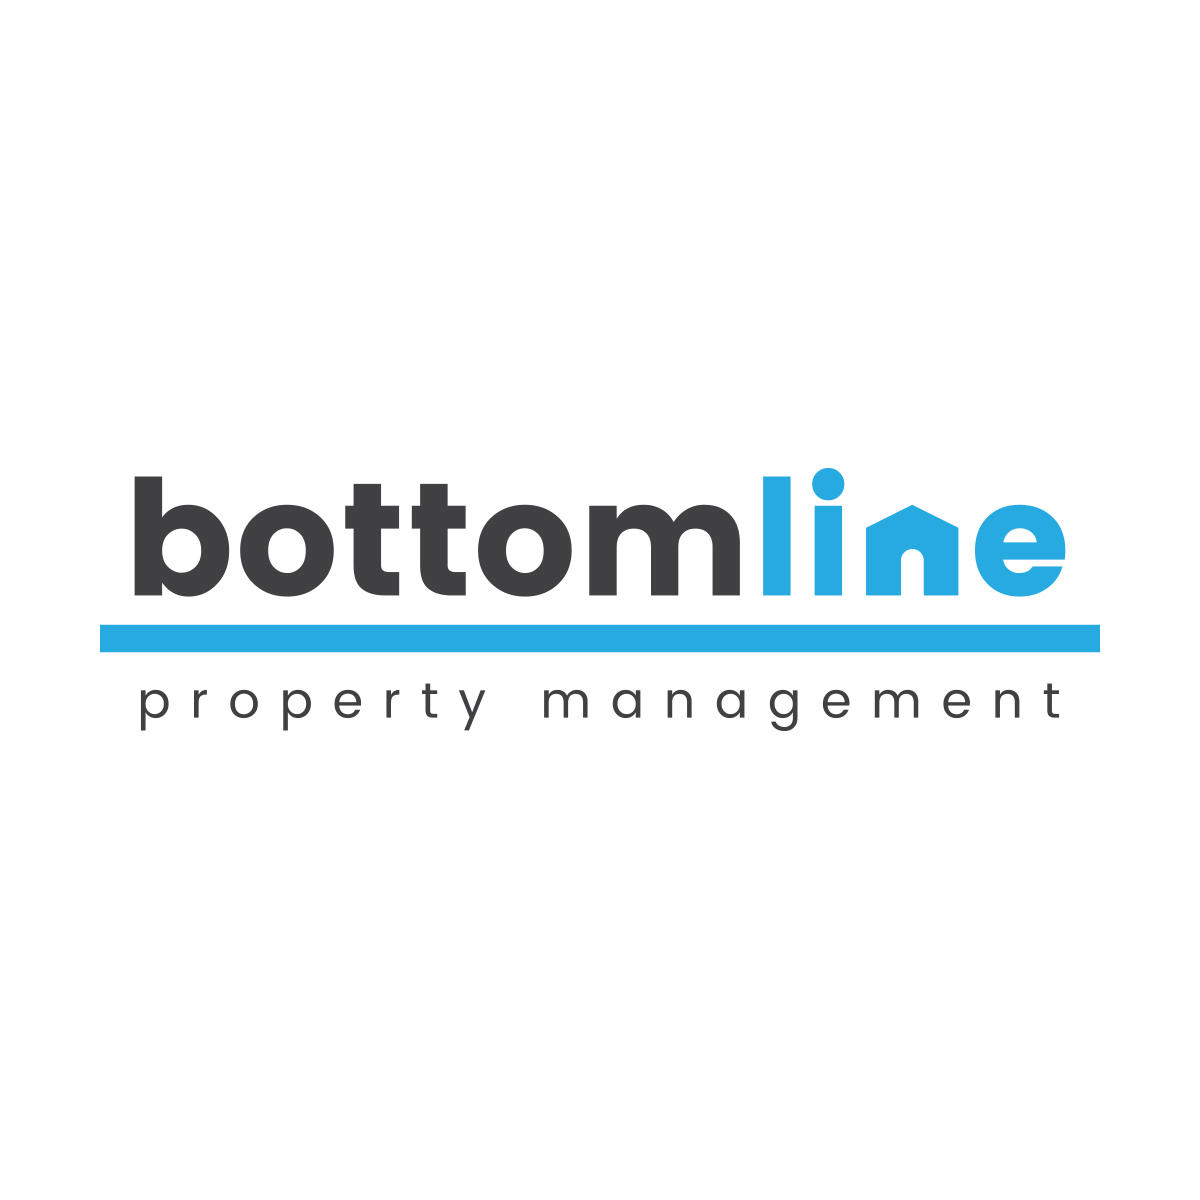 Bottom Line Property Management - Charlotte, NC - Property Management